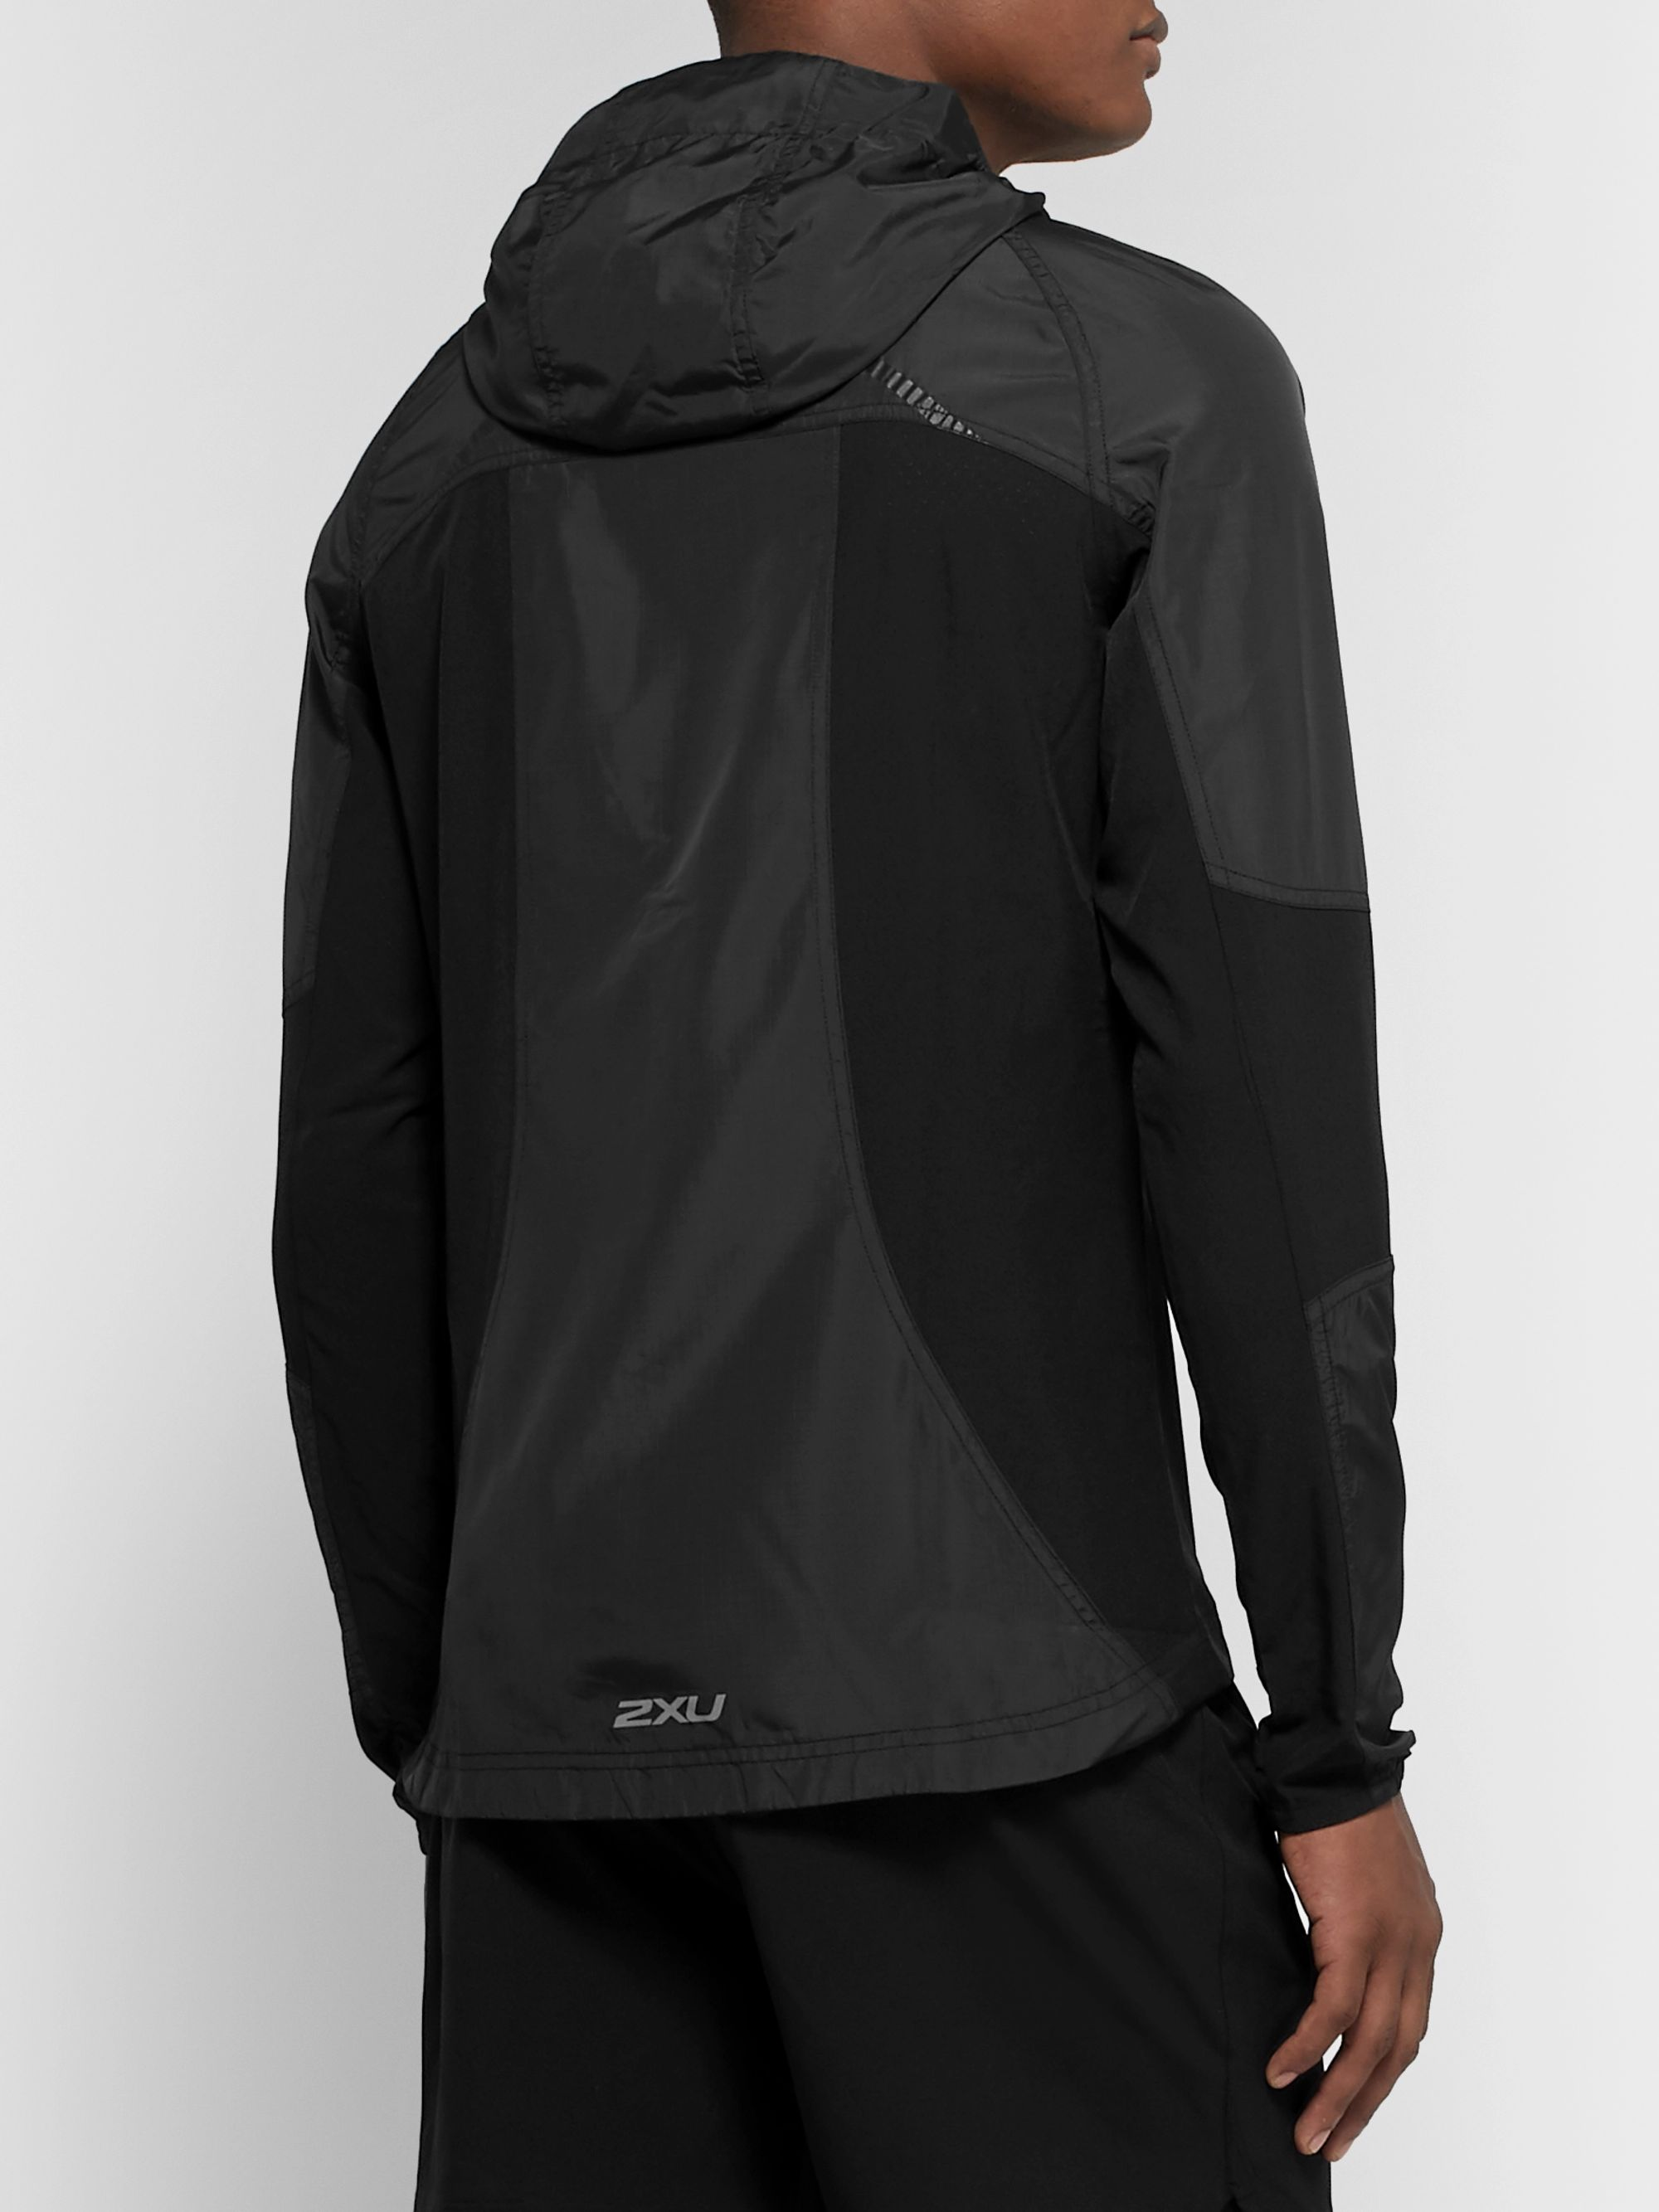 2XU XVENT Shell and Mesh Hooded Jacket